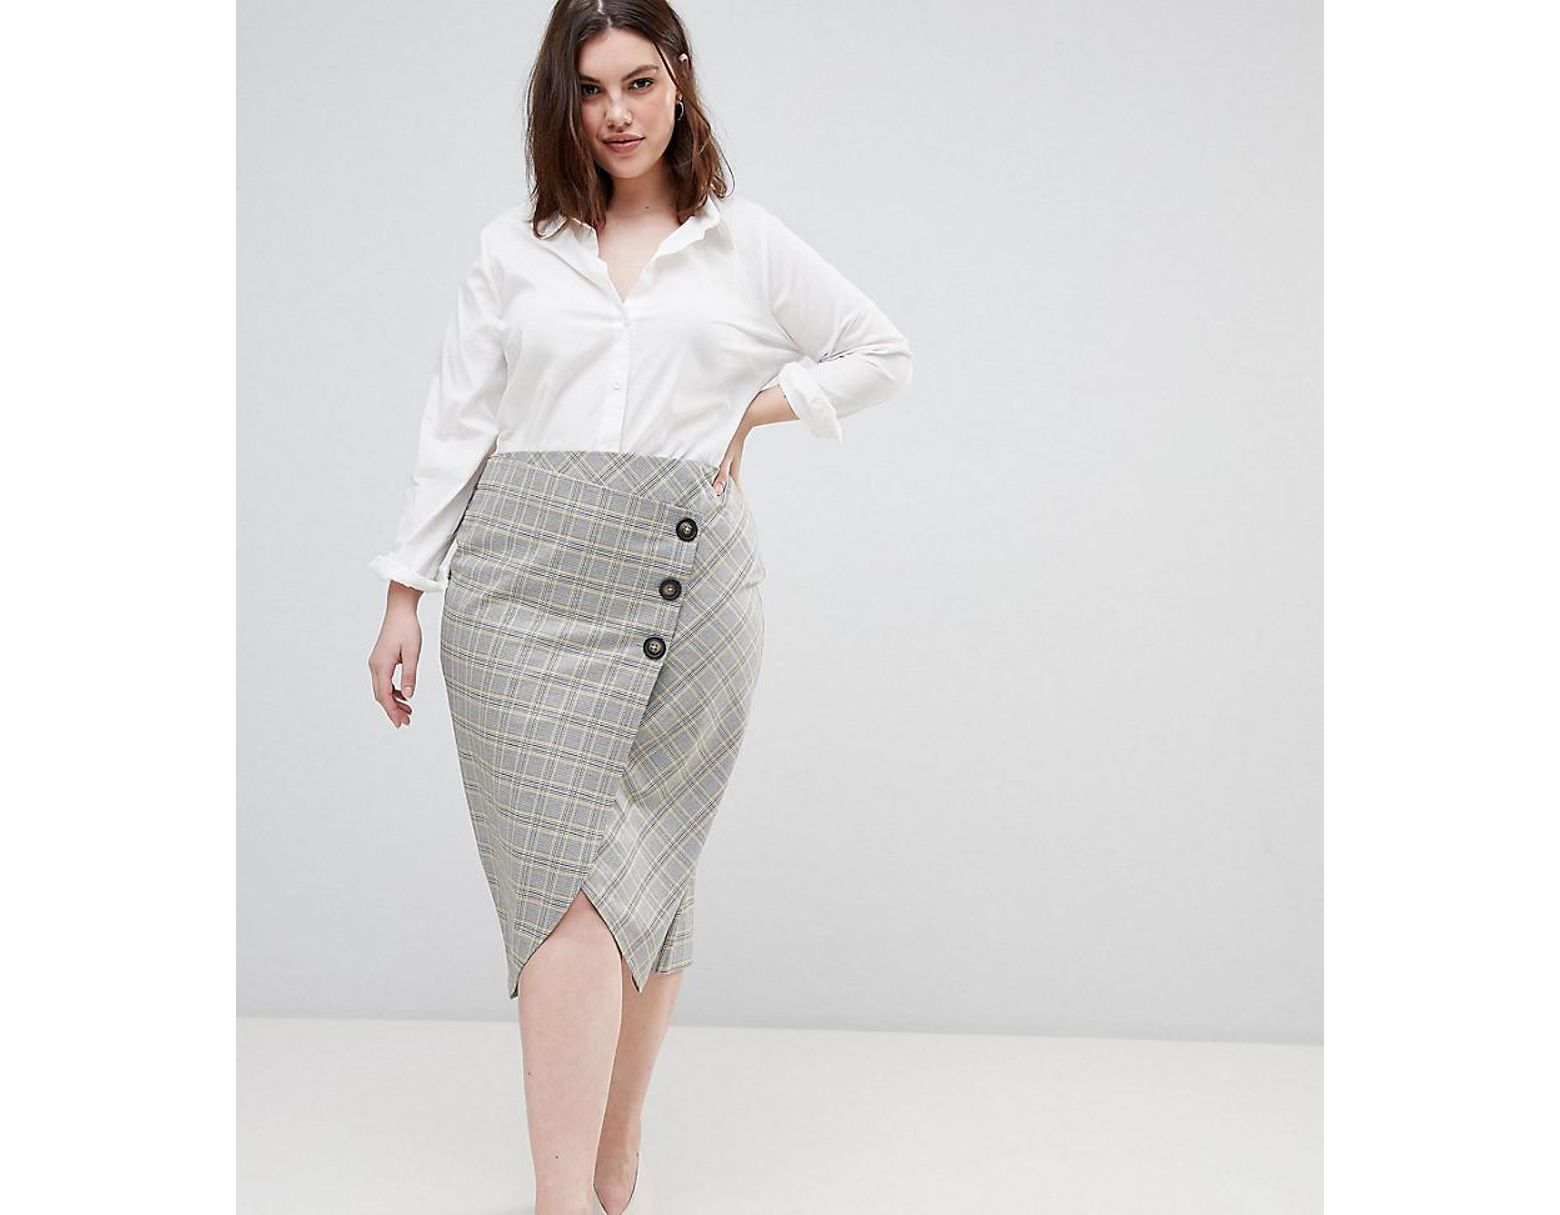 ff752b303a ASOS Asos Design Curve Tailored Midi Skirt In Check With Button Wrap Detail  in Gray - Lyst